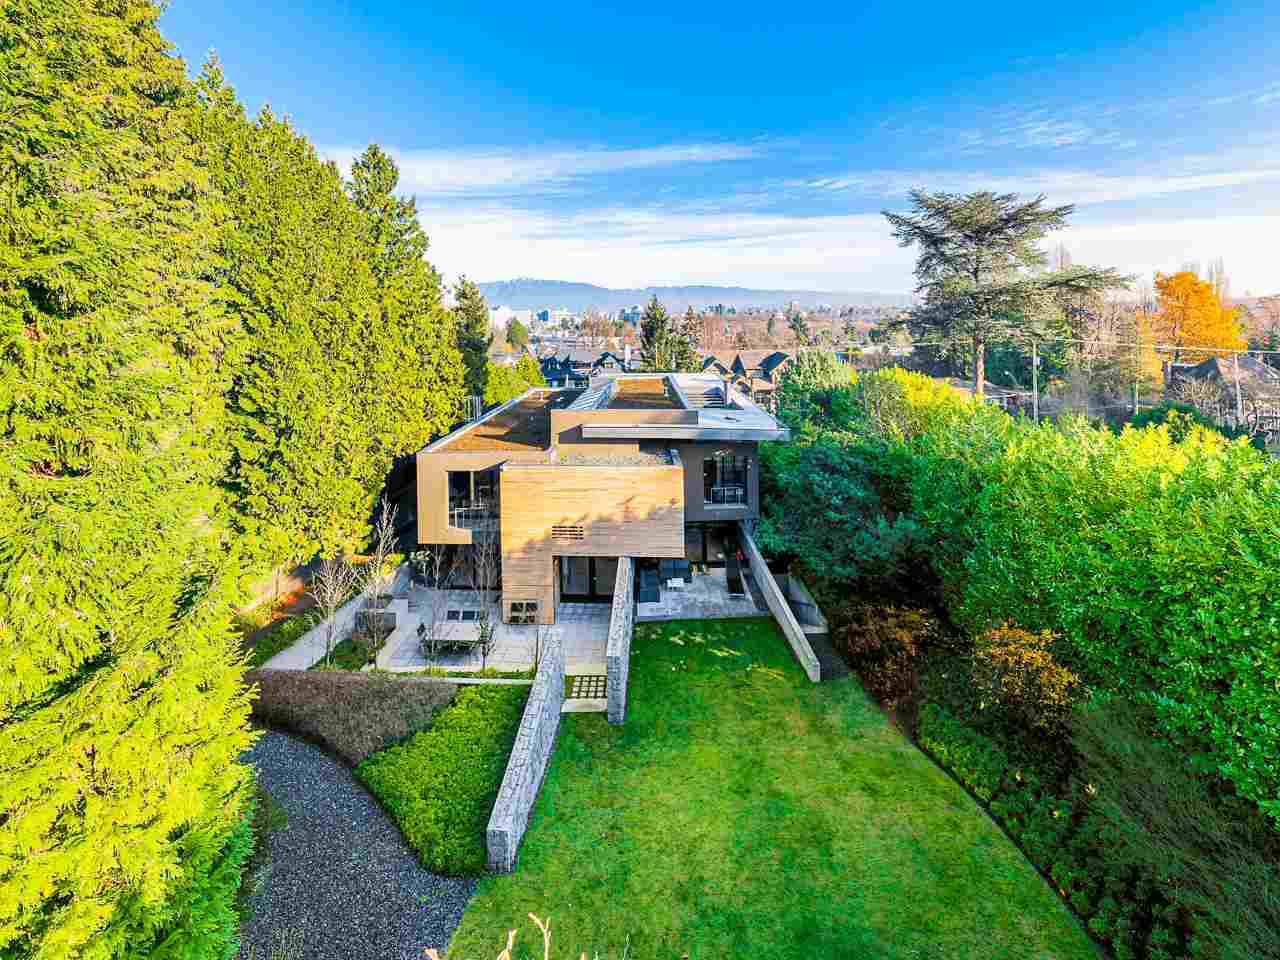 Main Photo: 1098 WOLFE Avenue in Vancouver: Shaughnessy House for sale (Vancouver West)  : MLS®# R2522827